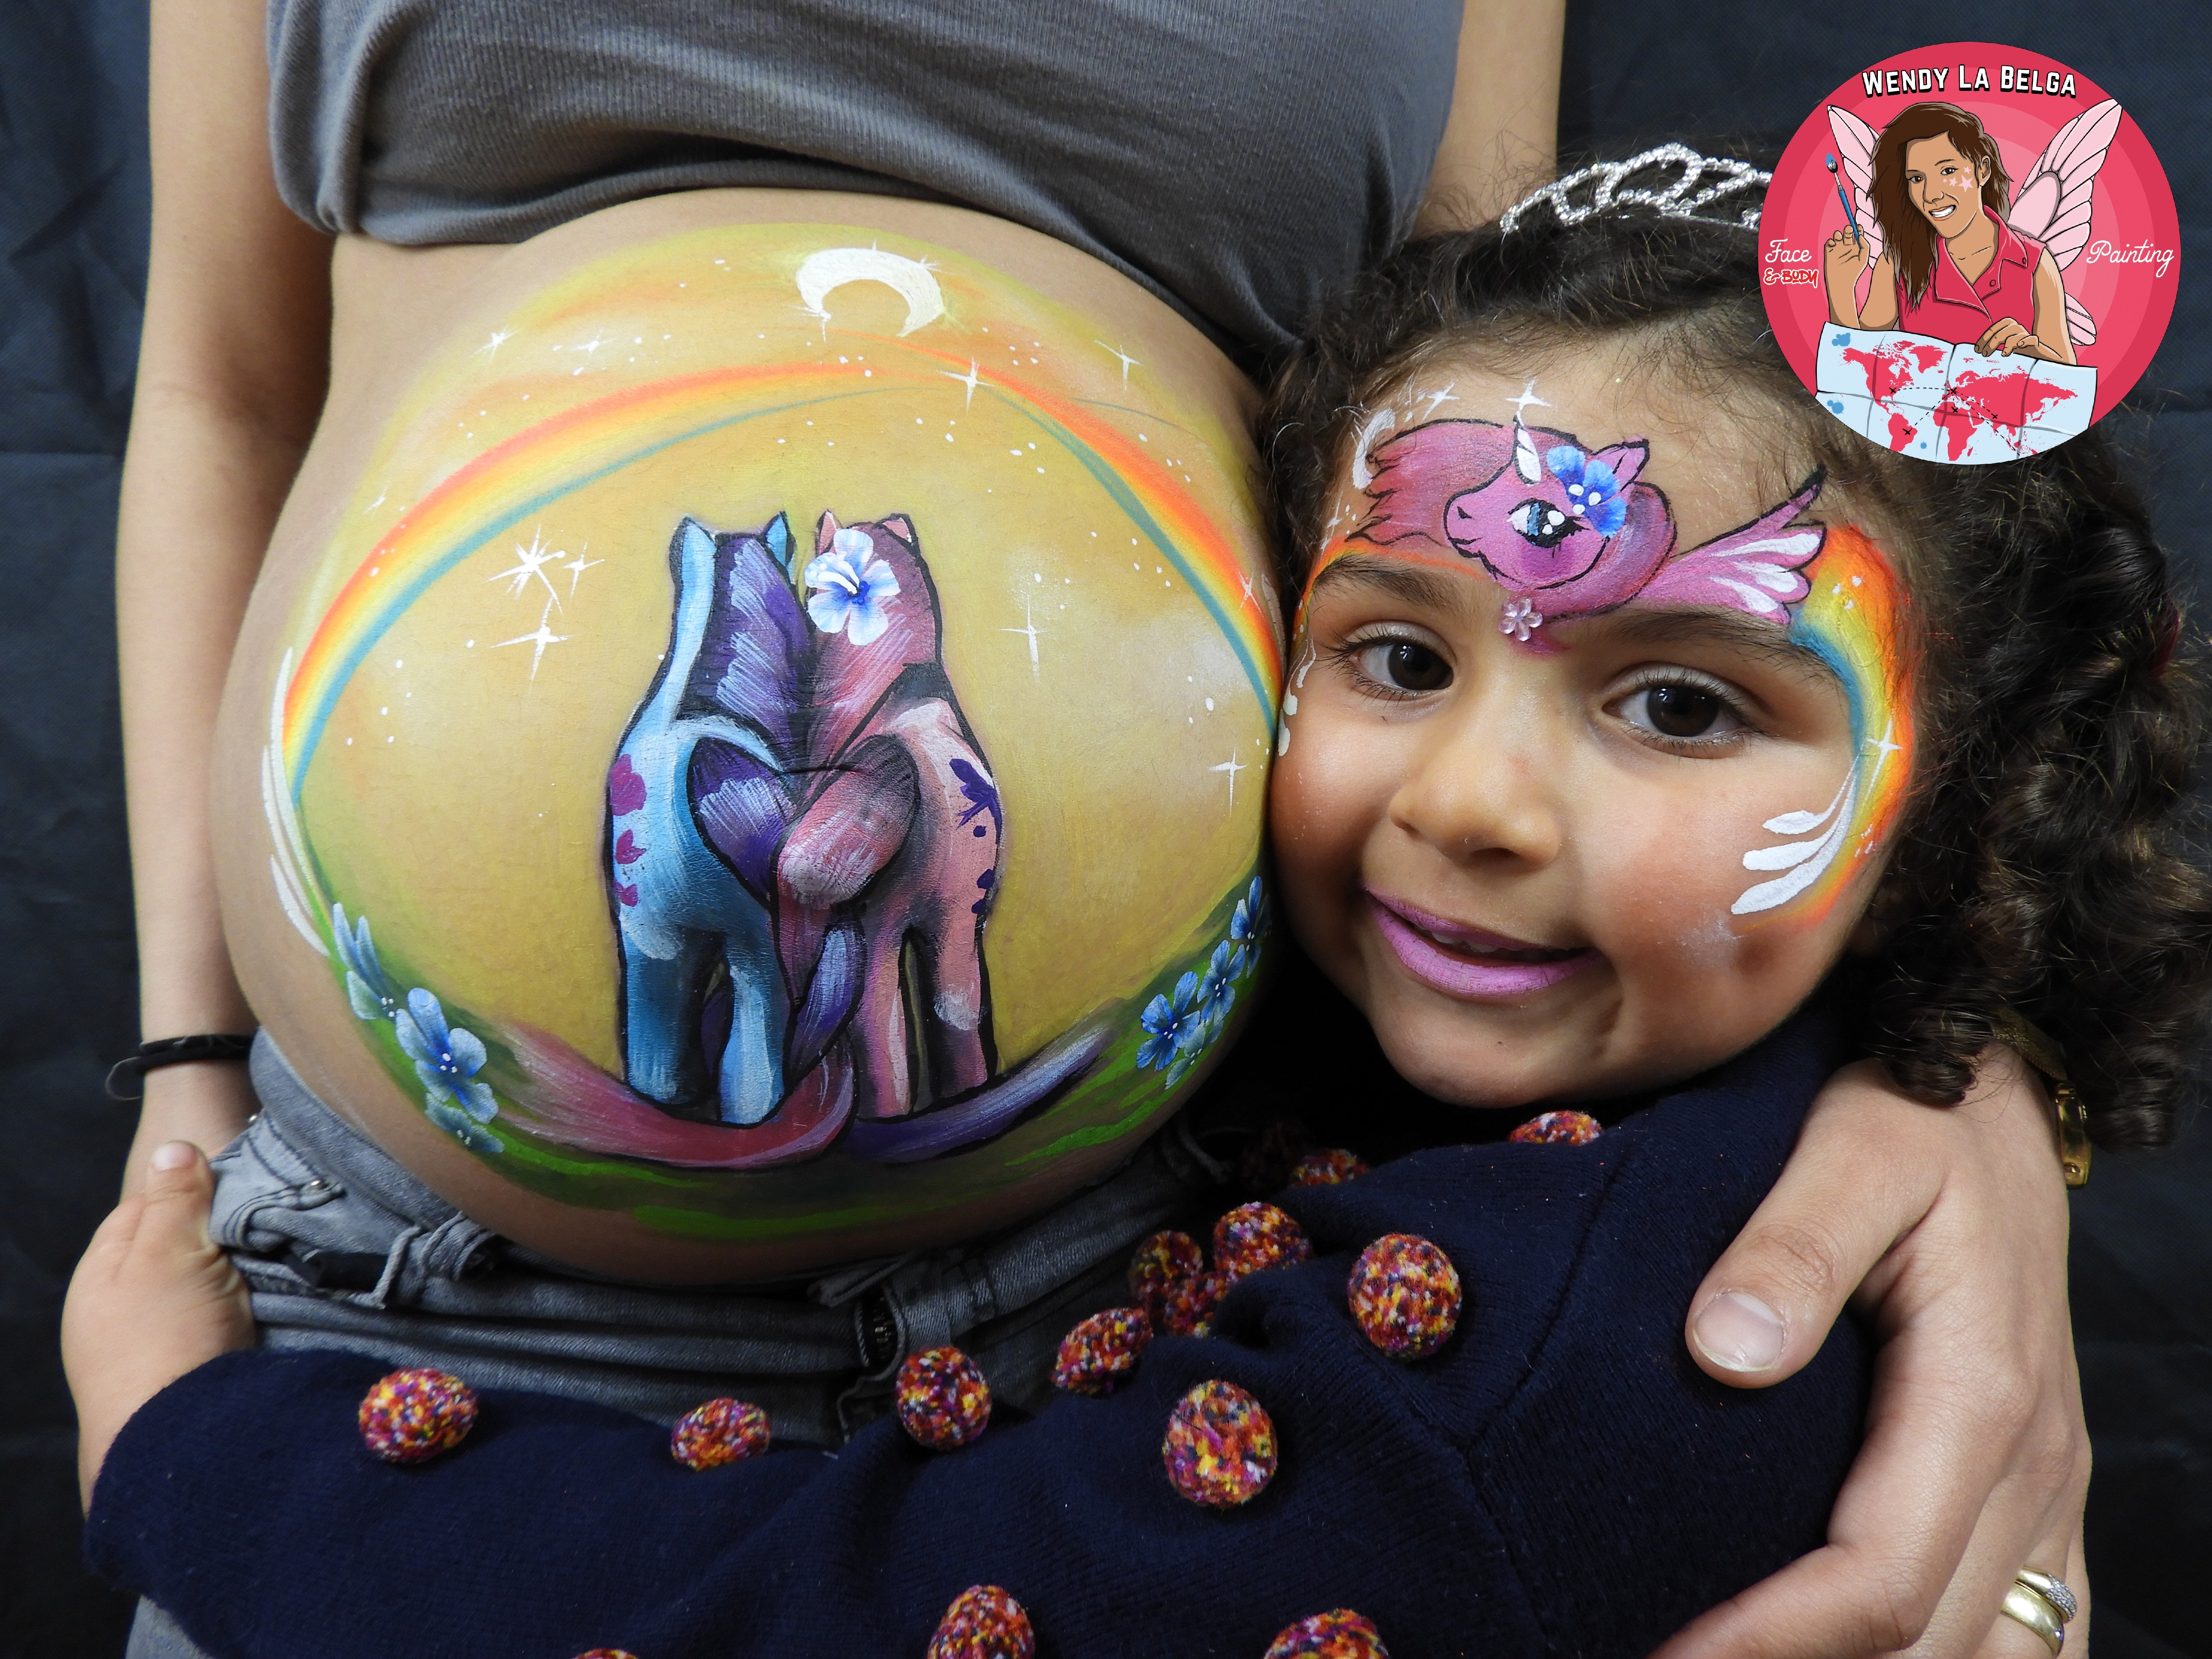 wendy la belga facepainting body painting body painting  belgique grimeuse maquillage enfant belly painting licorne univorn